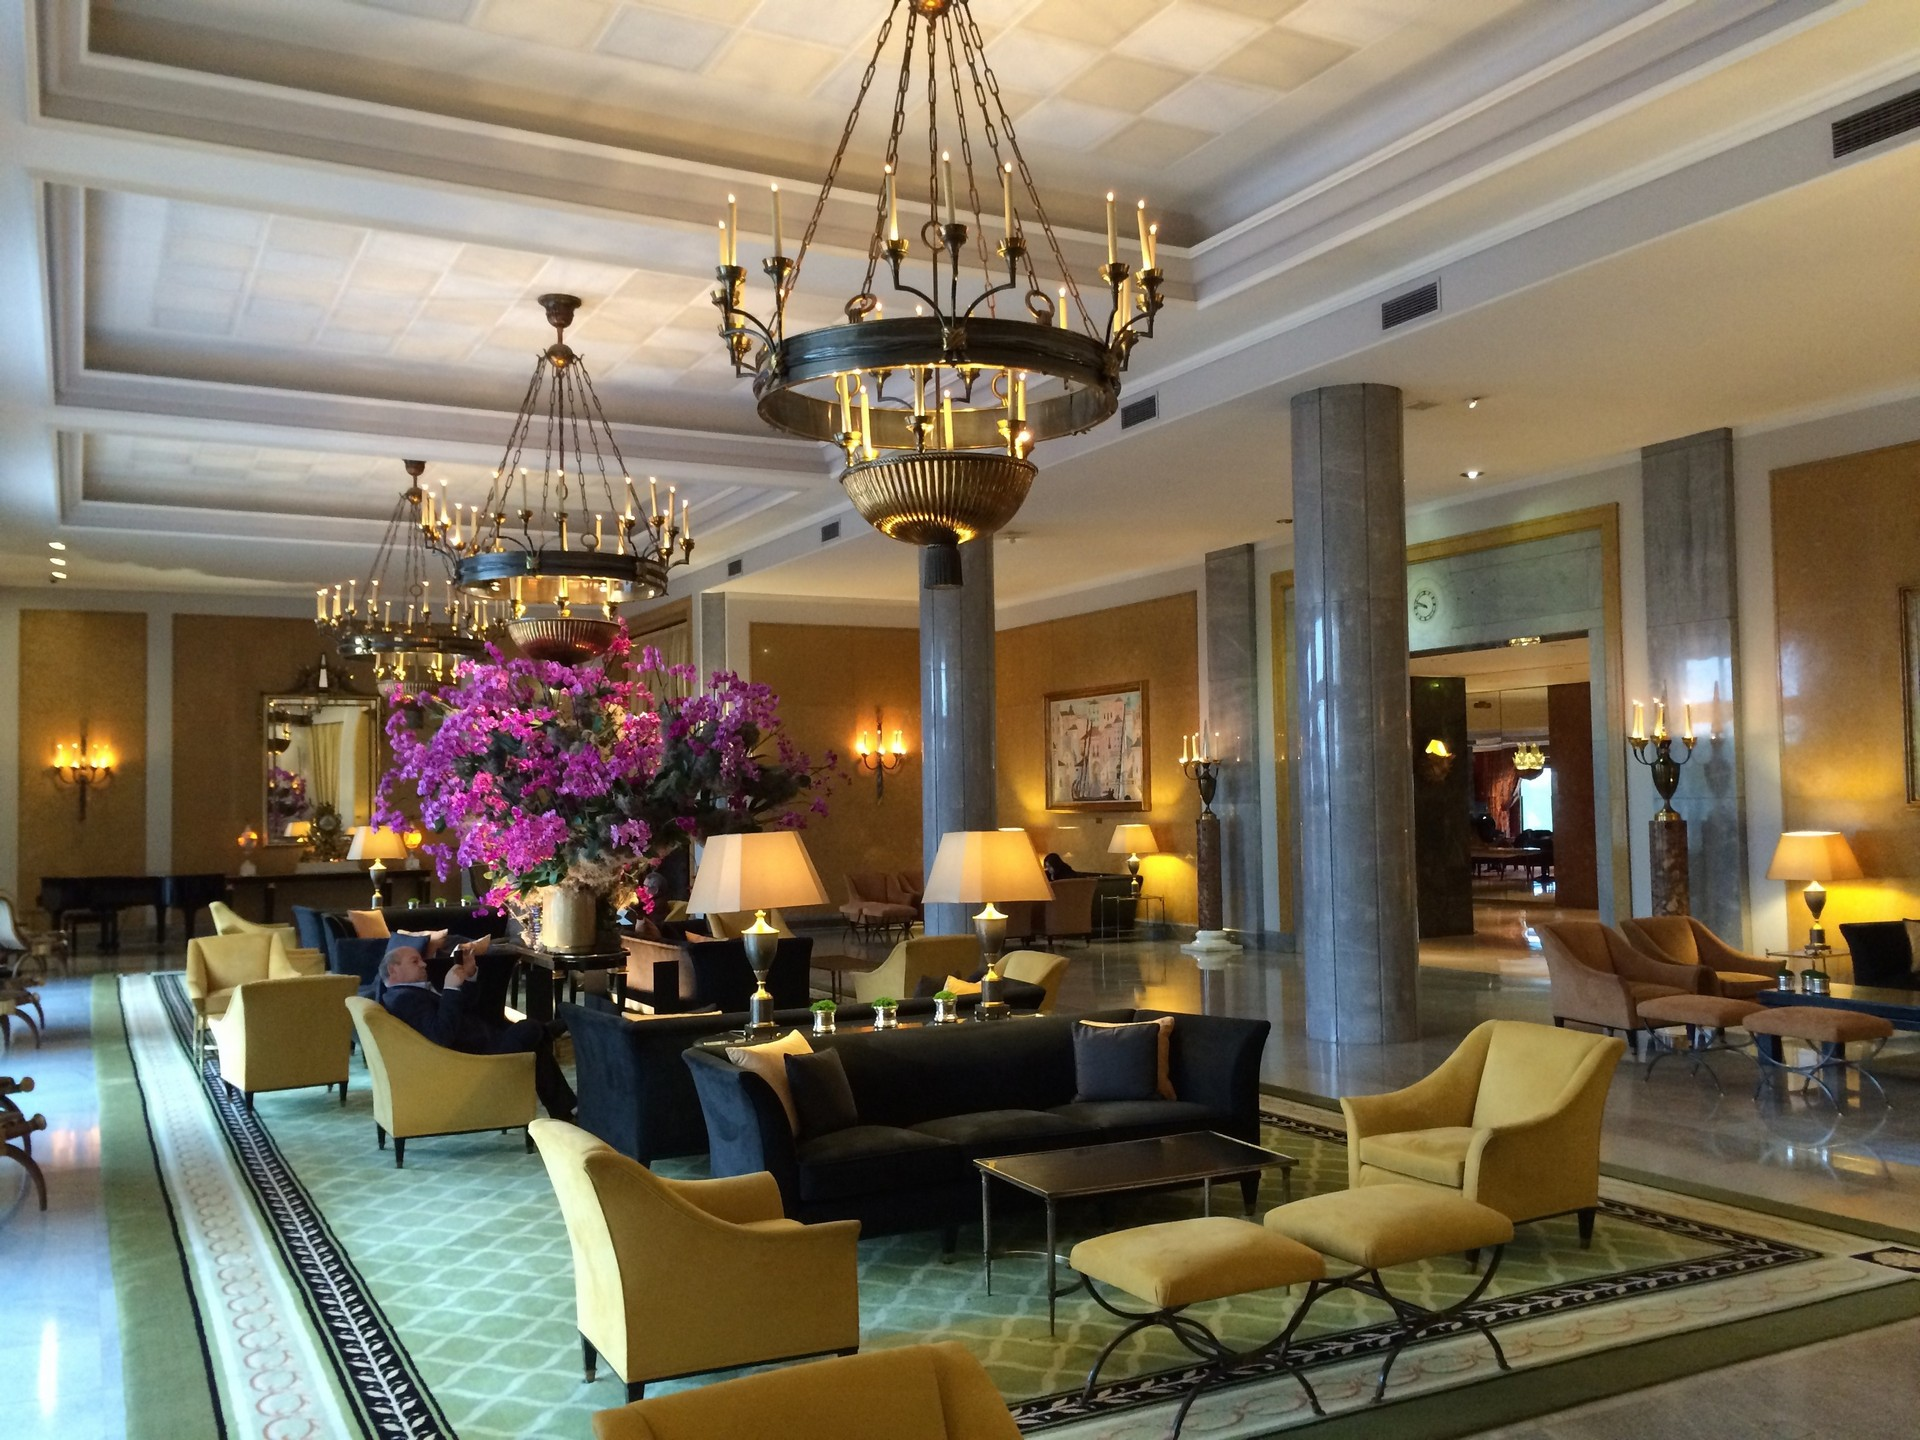 Best Hotels in Portugal: Four Seasons Hotel Ritz best hotels in portugal Best Hotels in Portugal You Can't Miss Best Hotels in Portugal 7